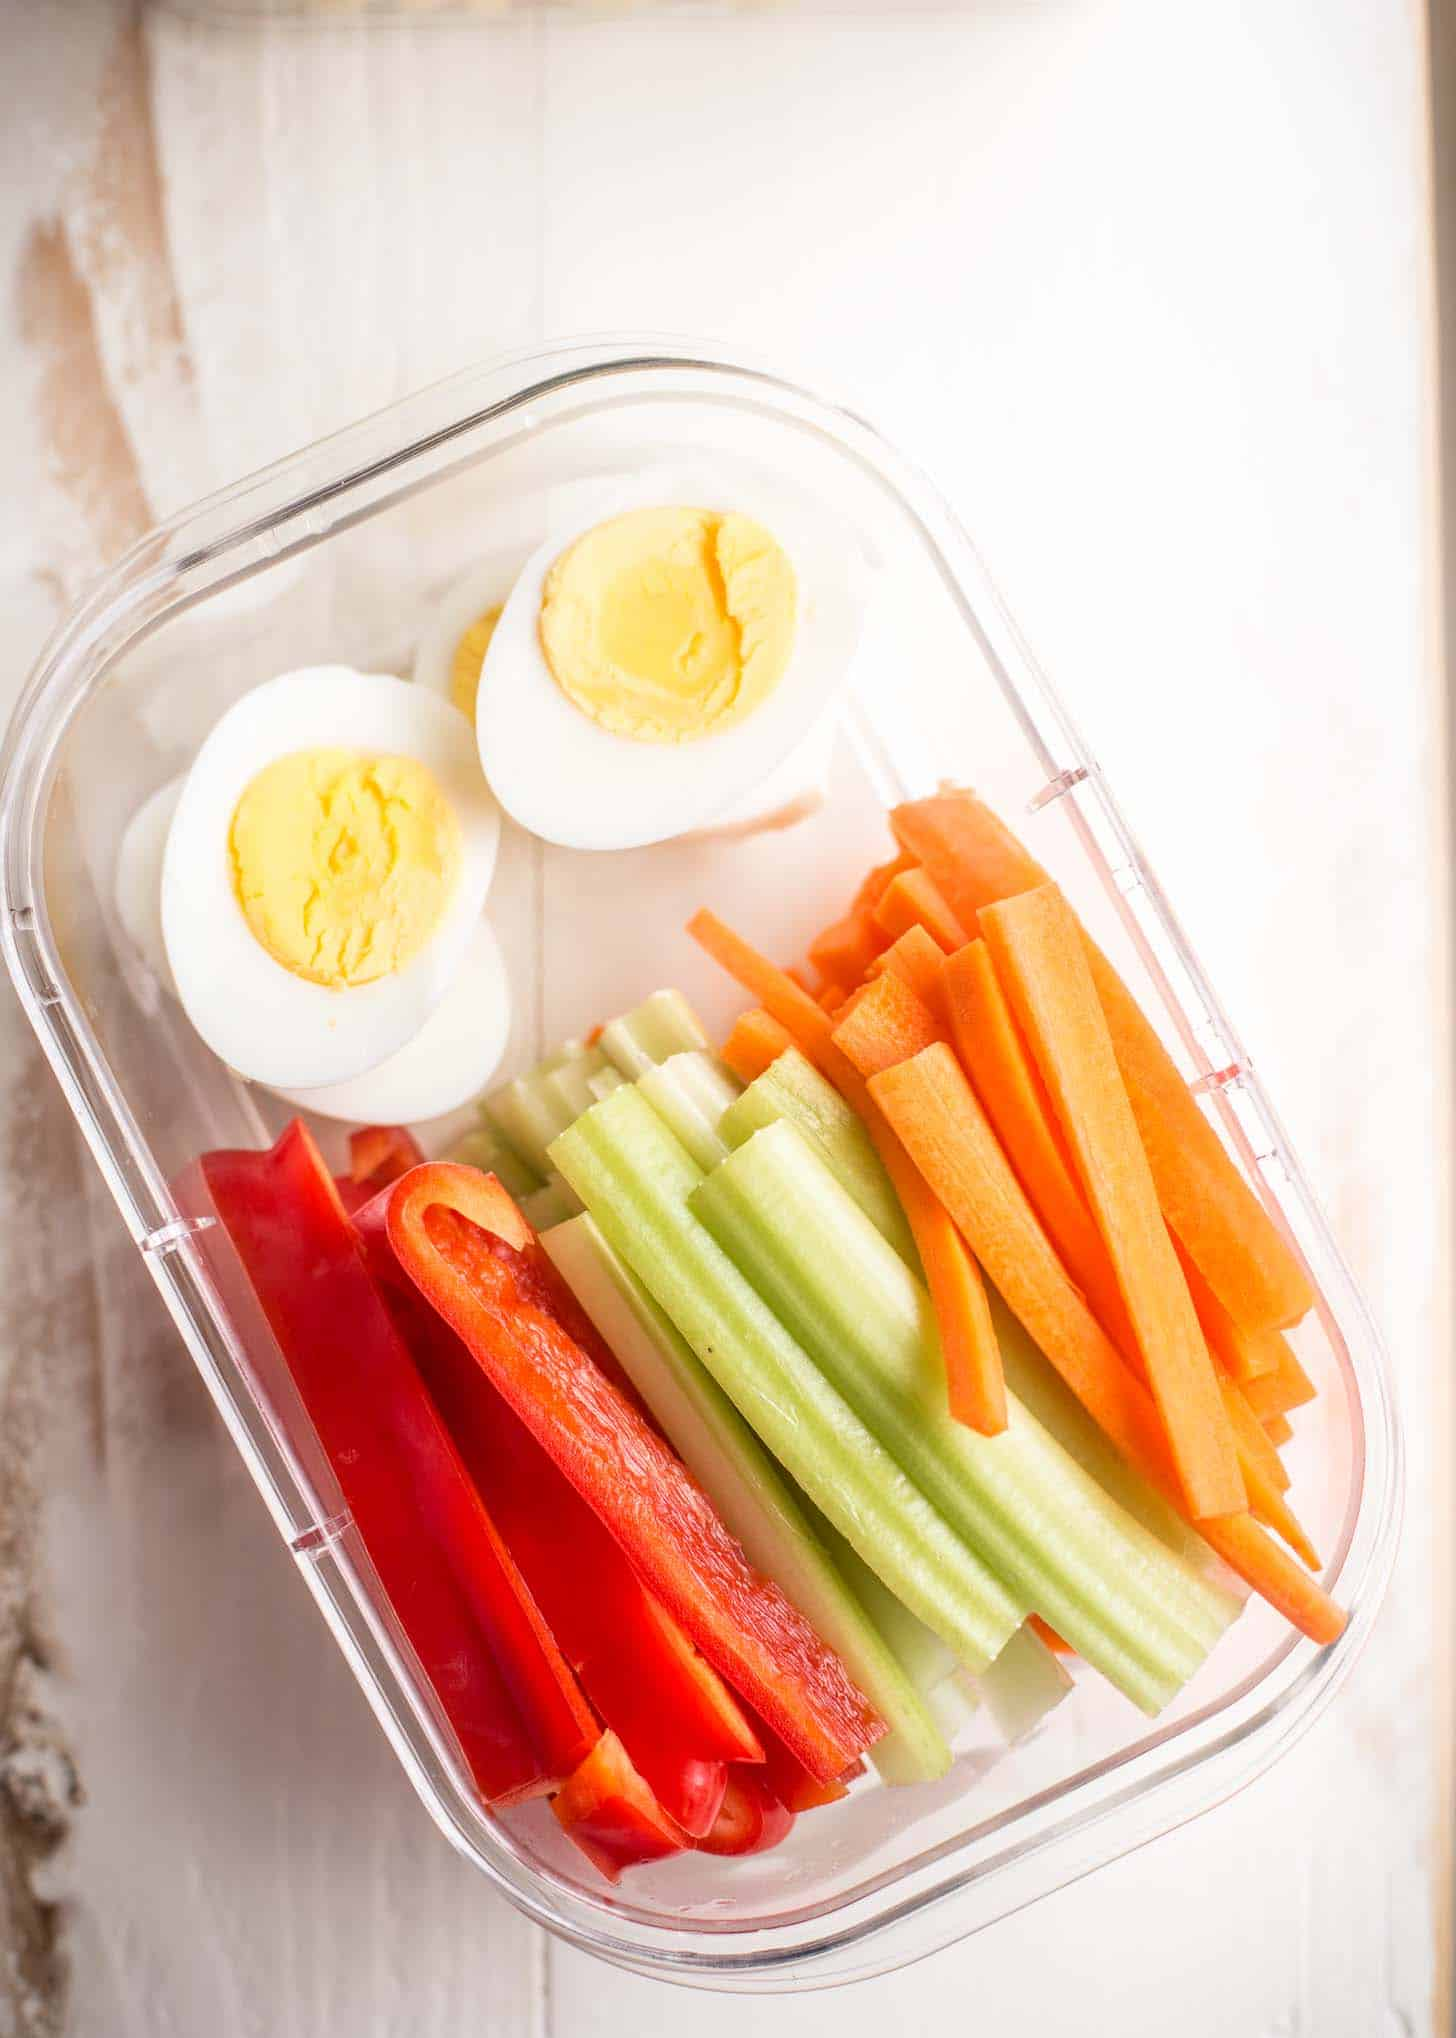 boiled eggs and sliced vegetables in a plastic container